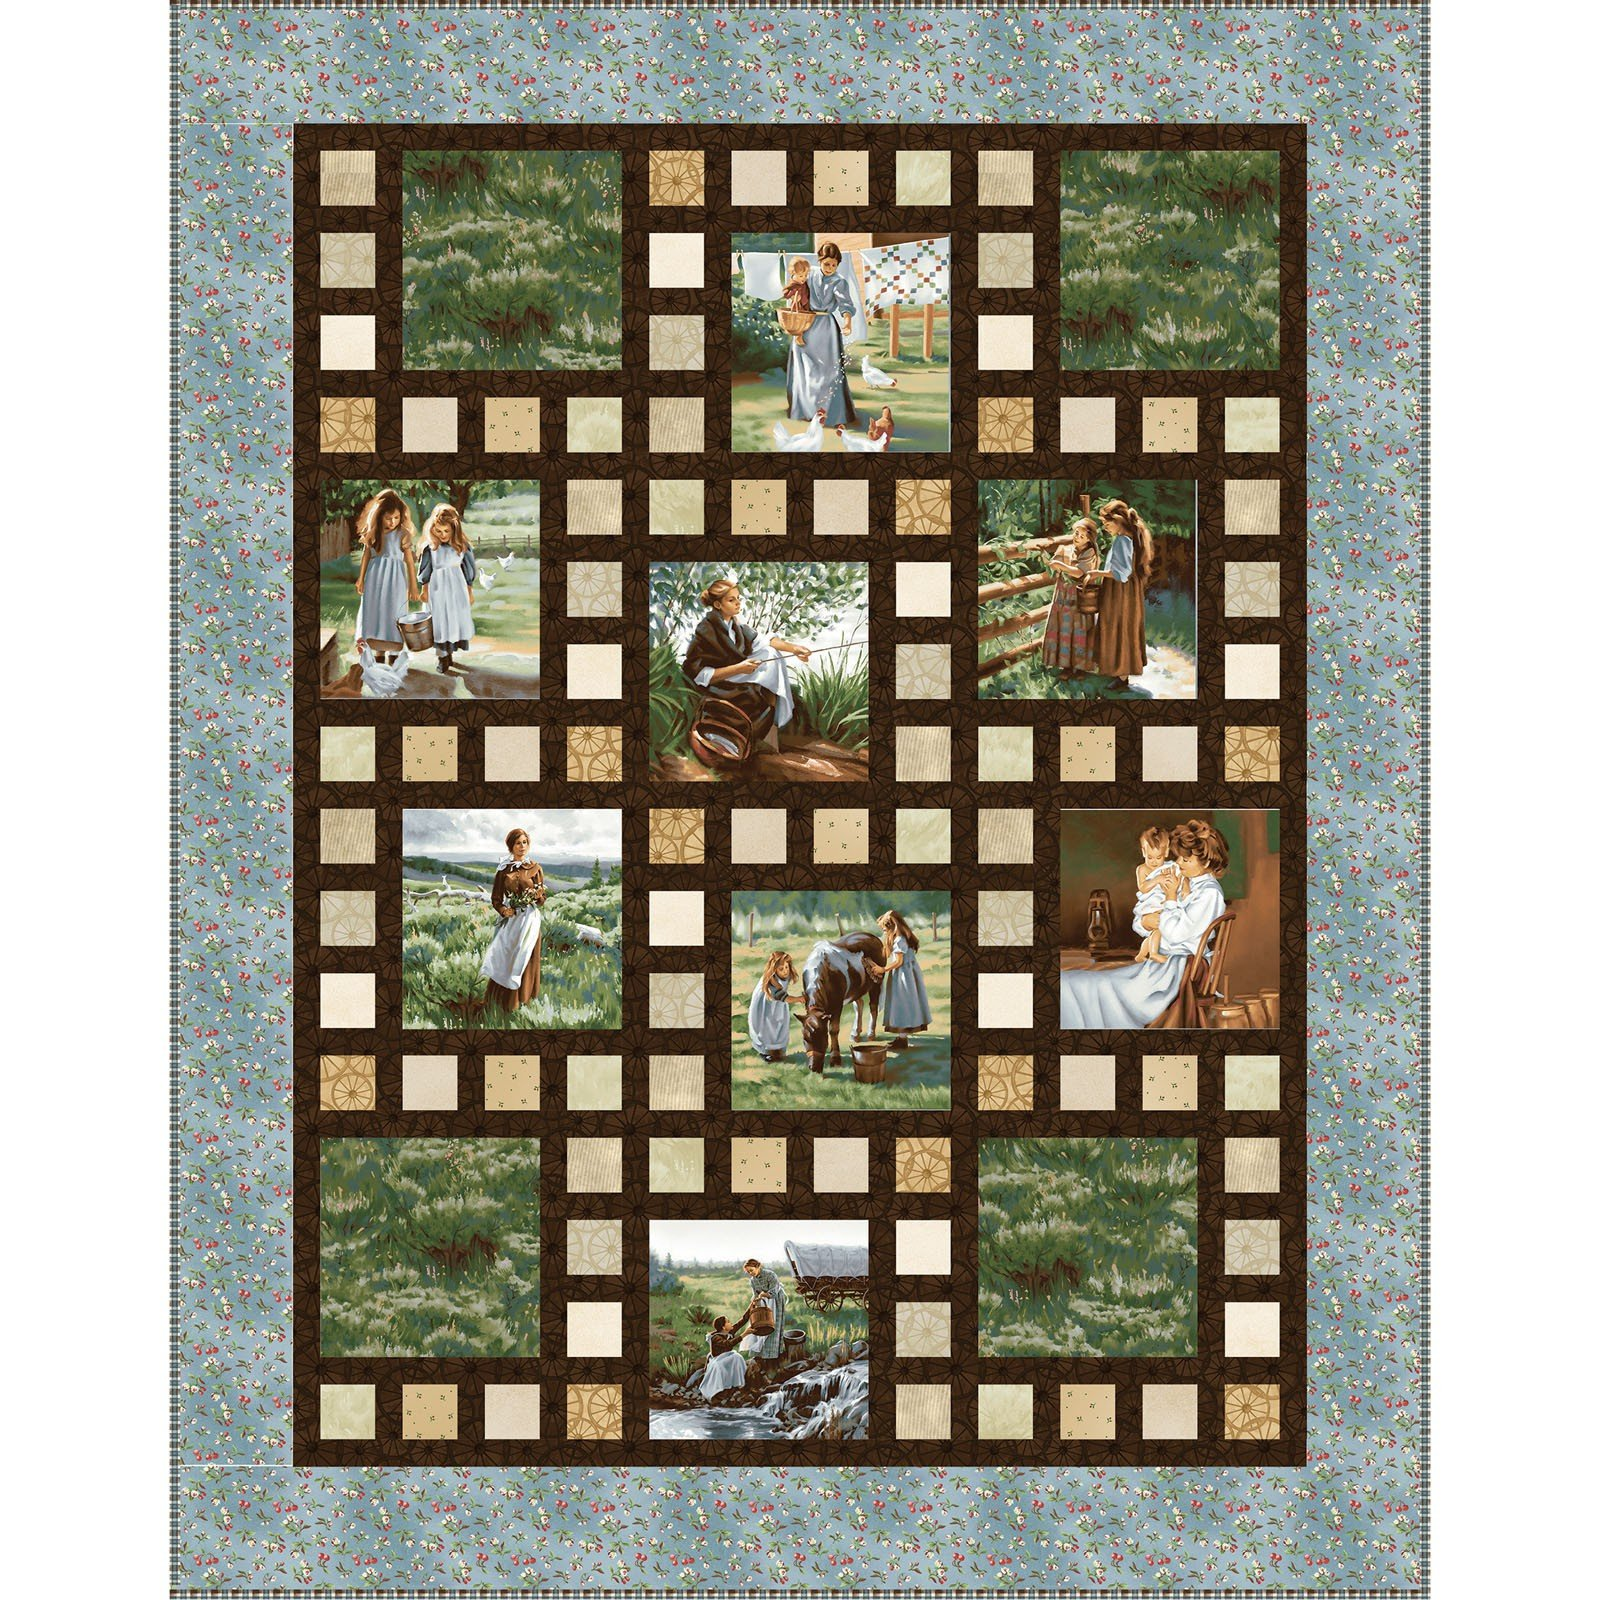 dragonflies quilt and kits whims com watercolor dp amazon supplies online quilting lilypads